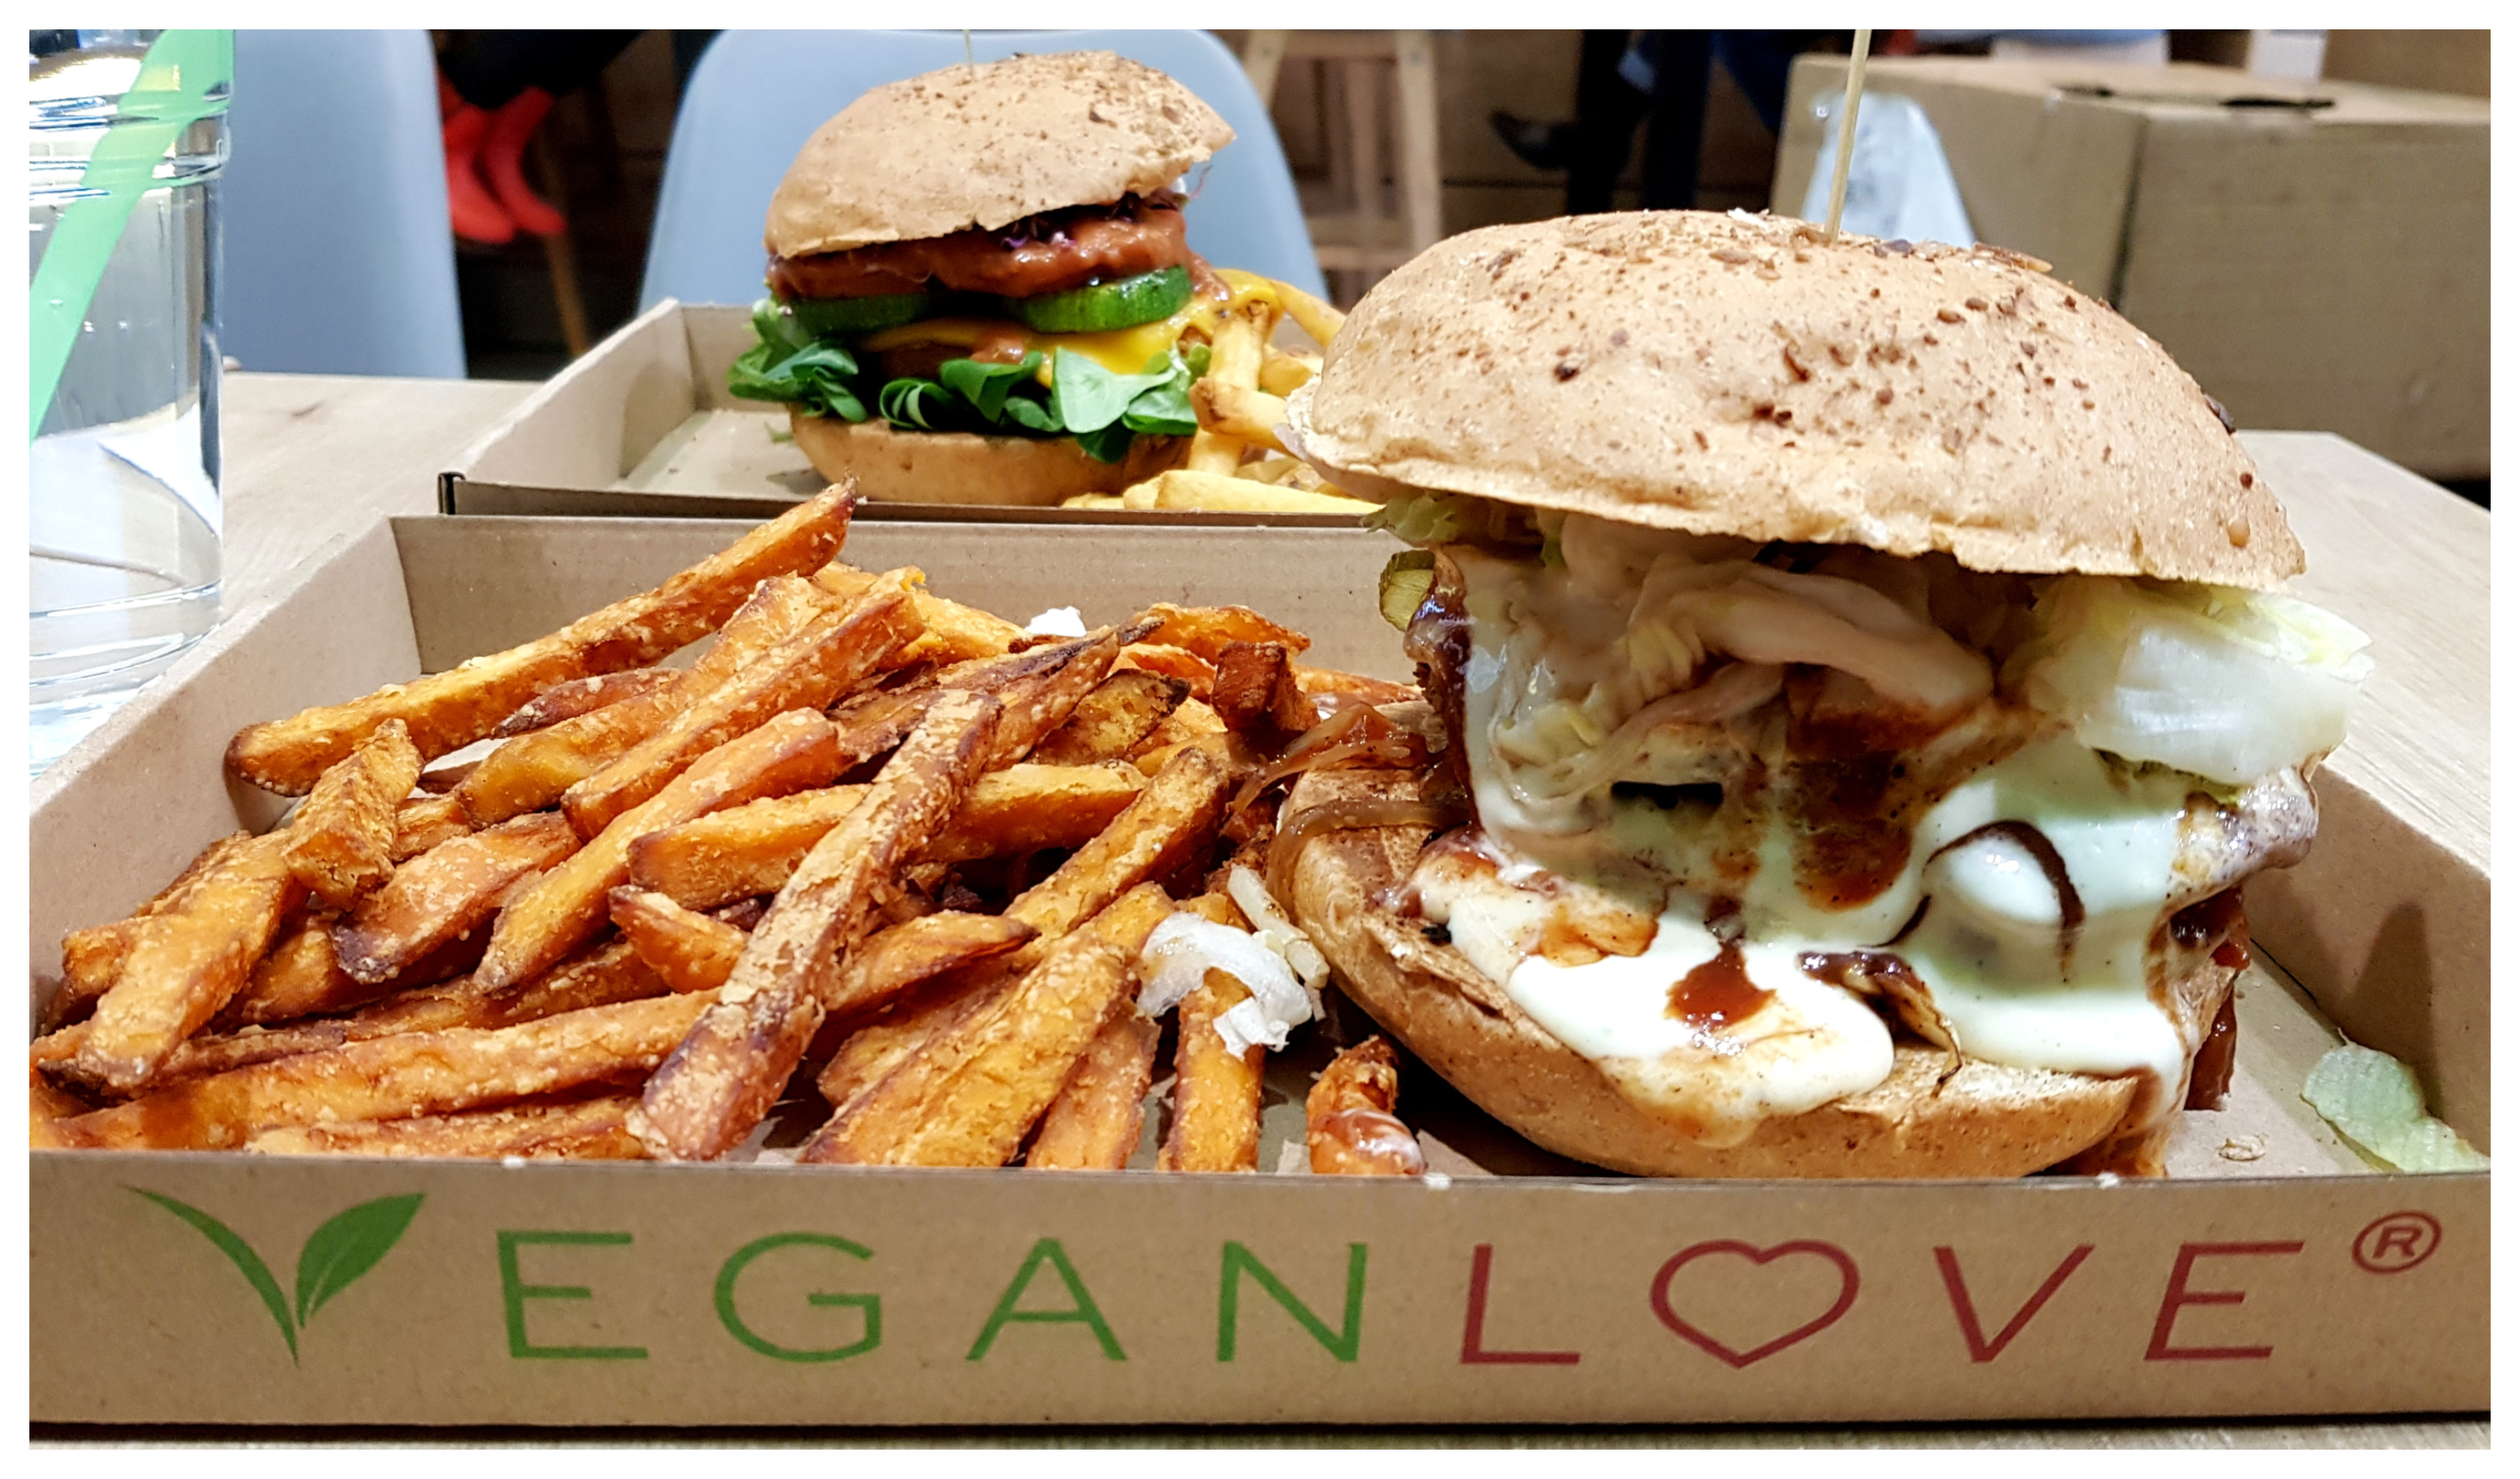 vegan-love-budapest-burger-hot-dog-fries-